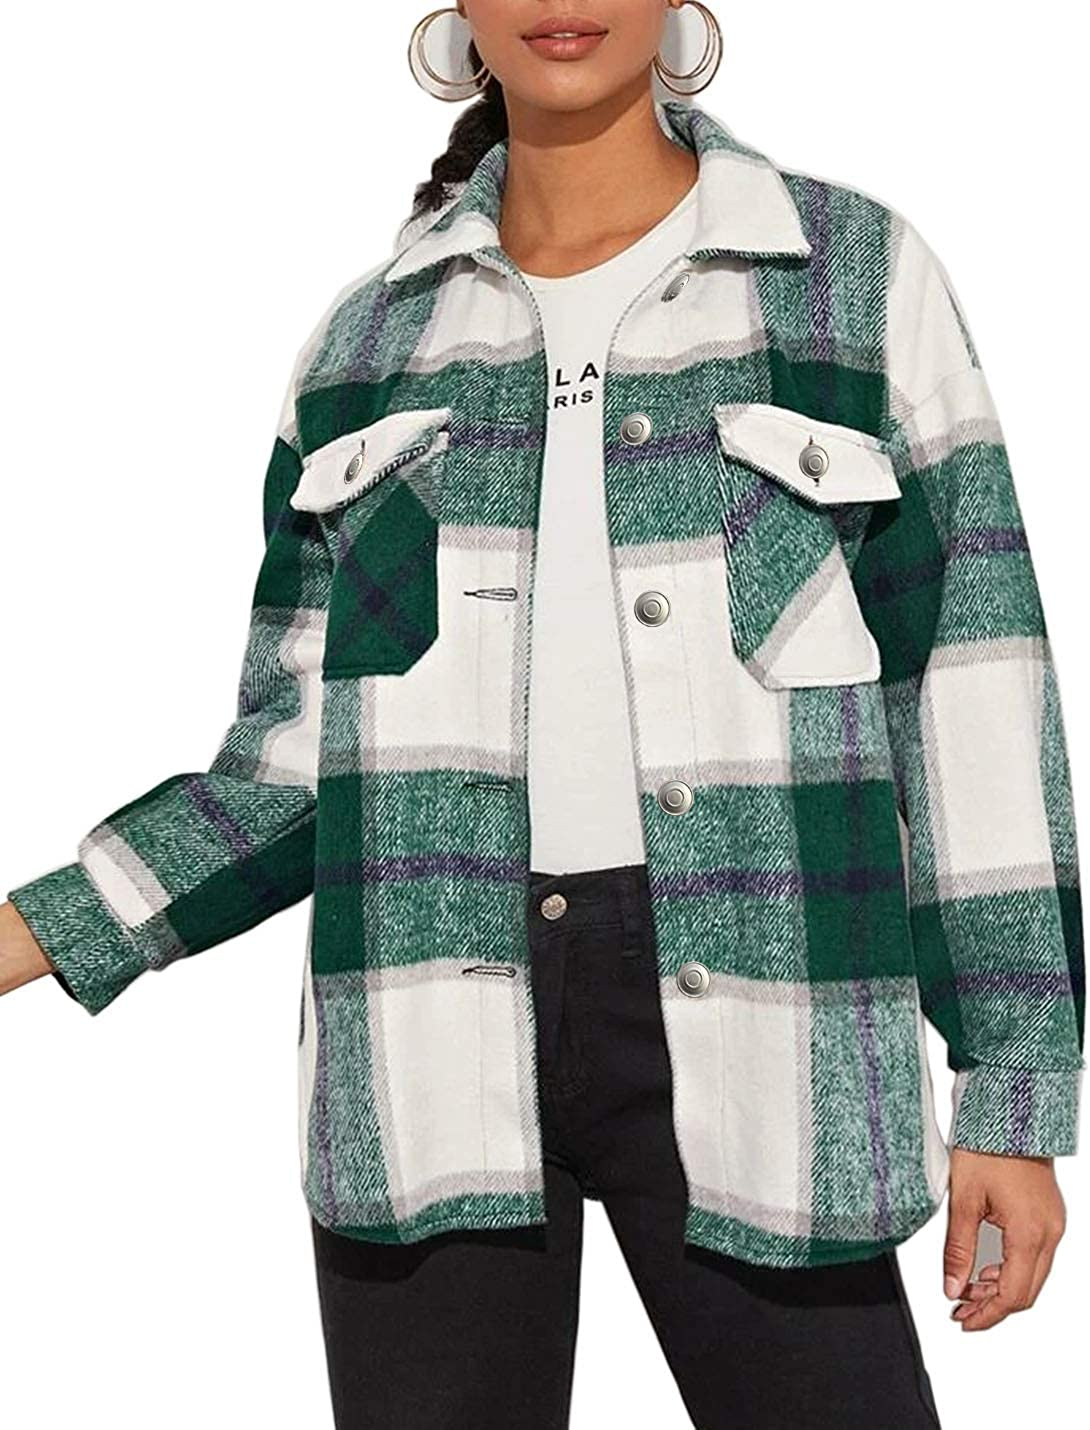 Gacaky Womens Wool Blend Plaid Front Button Casual Lapel Collar Jacket Outwear